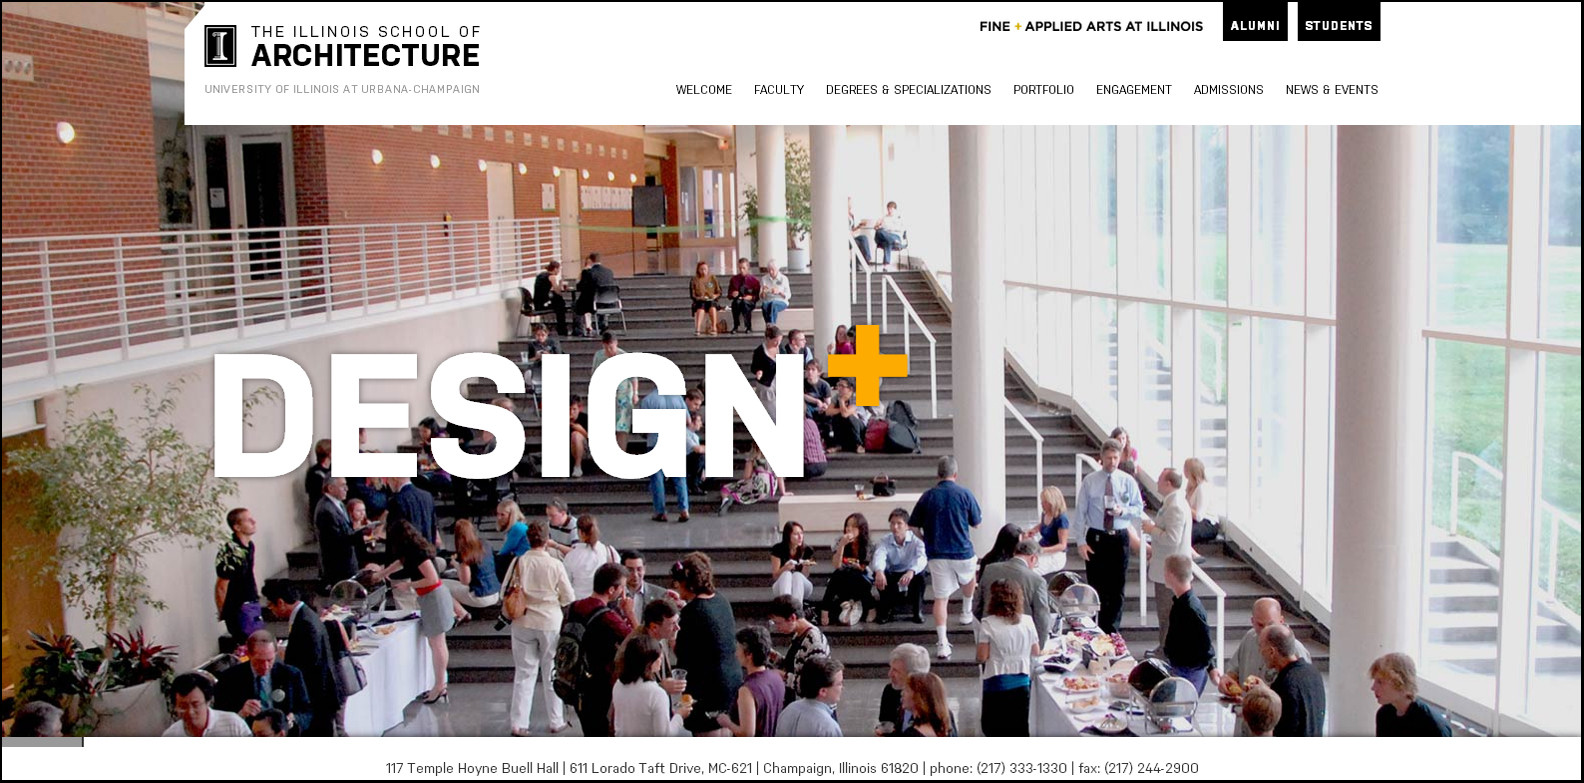 The Illinois School of Architecture Announces New Website